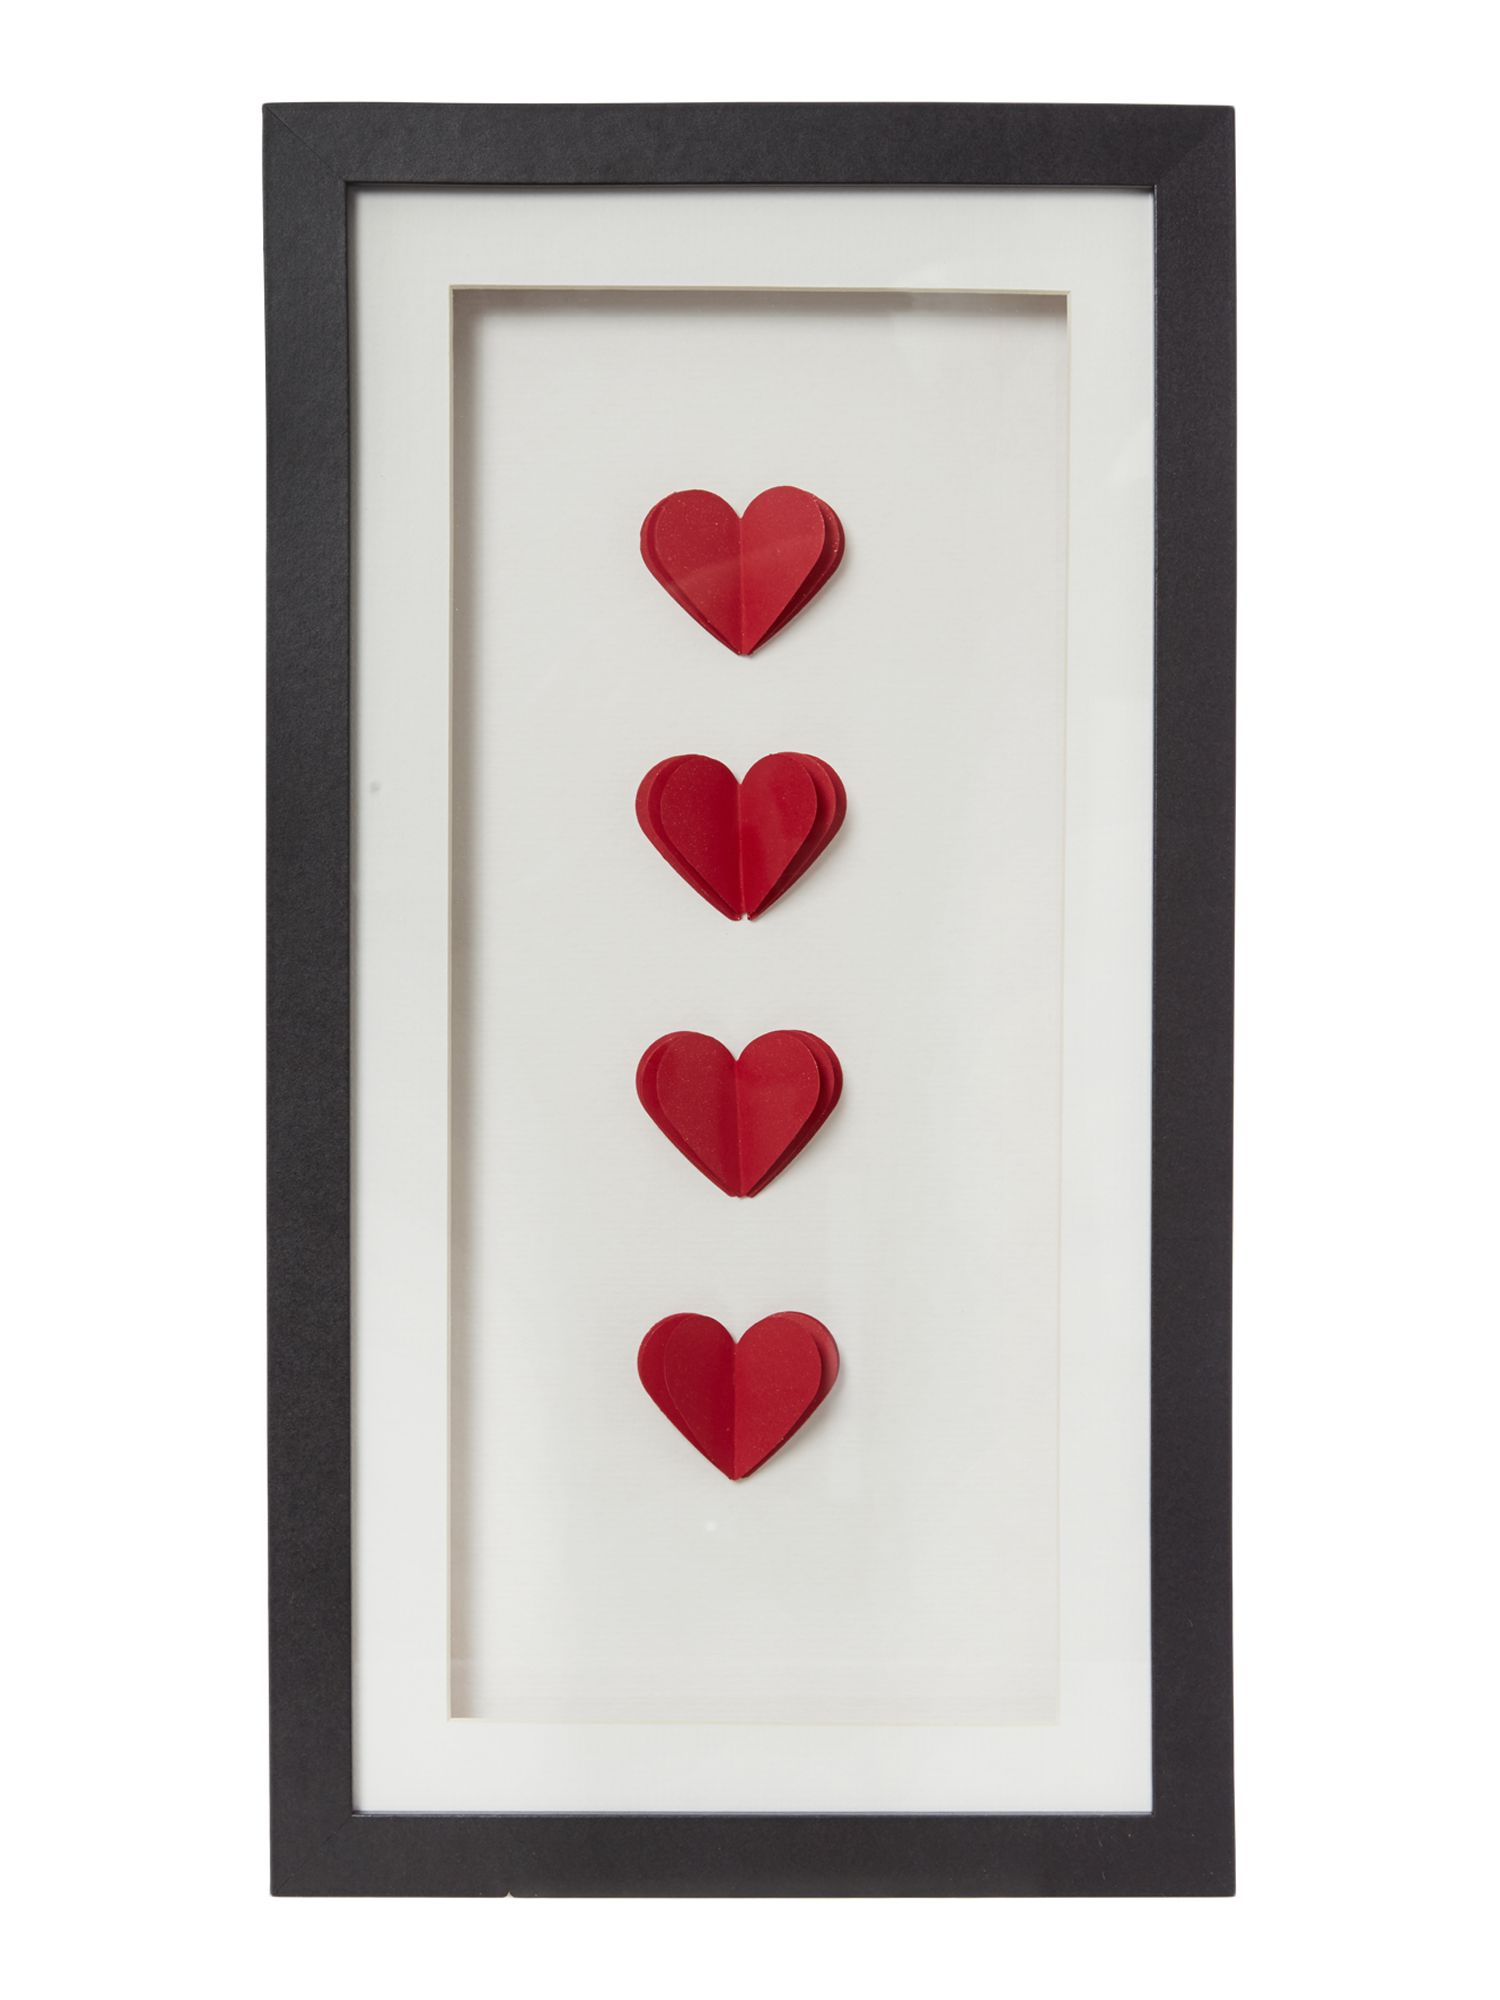 Love heart red wall art